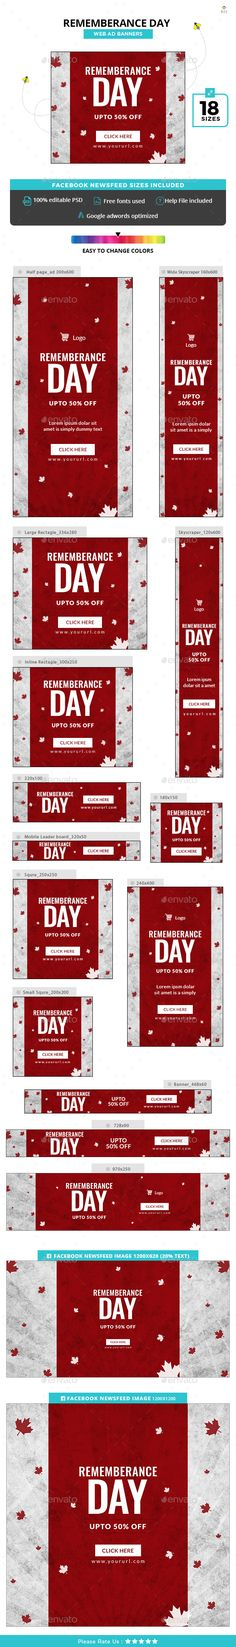 Rememberance Day Banners